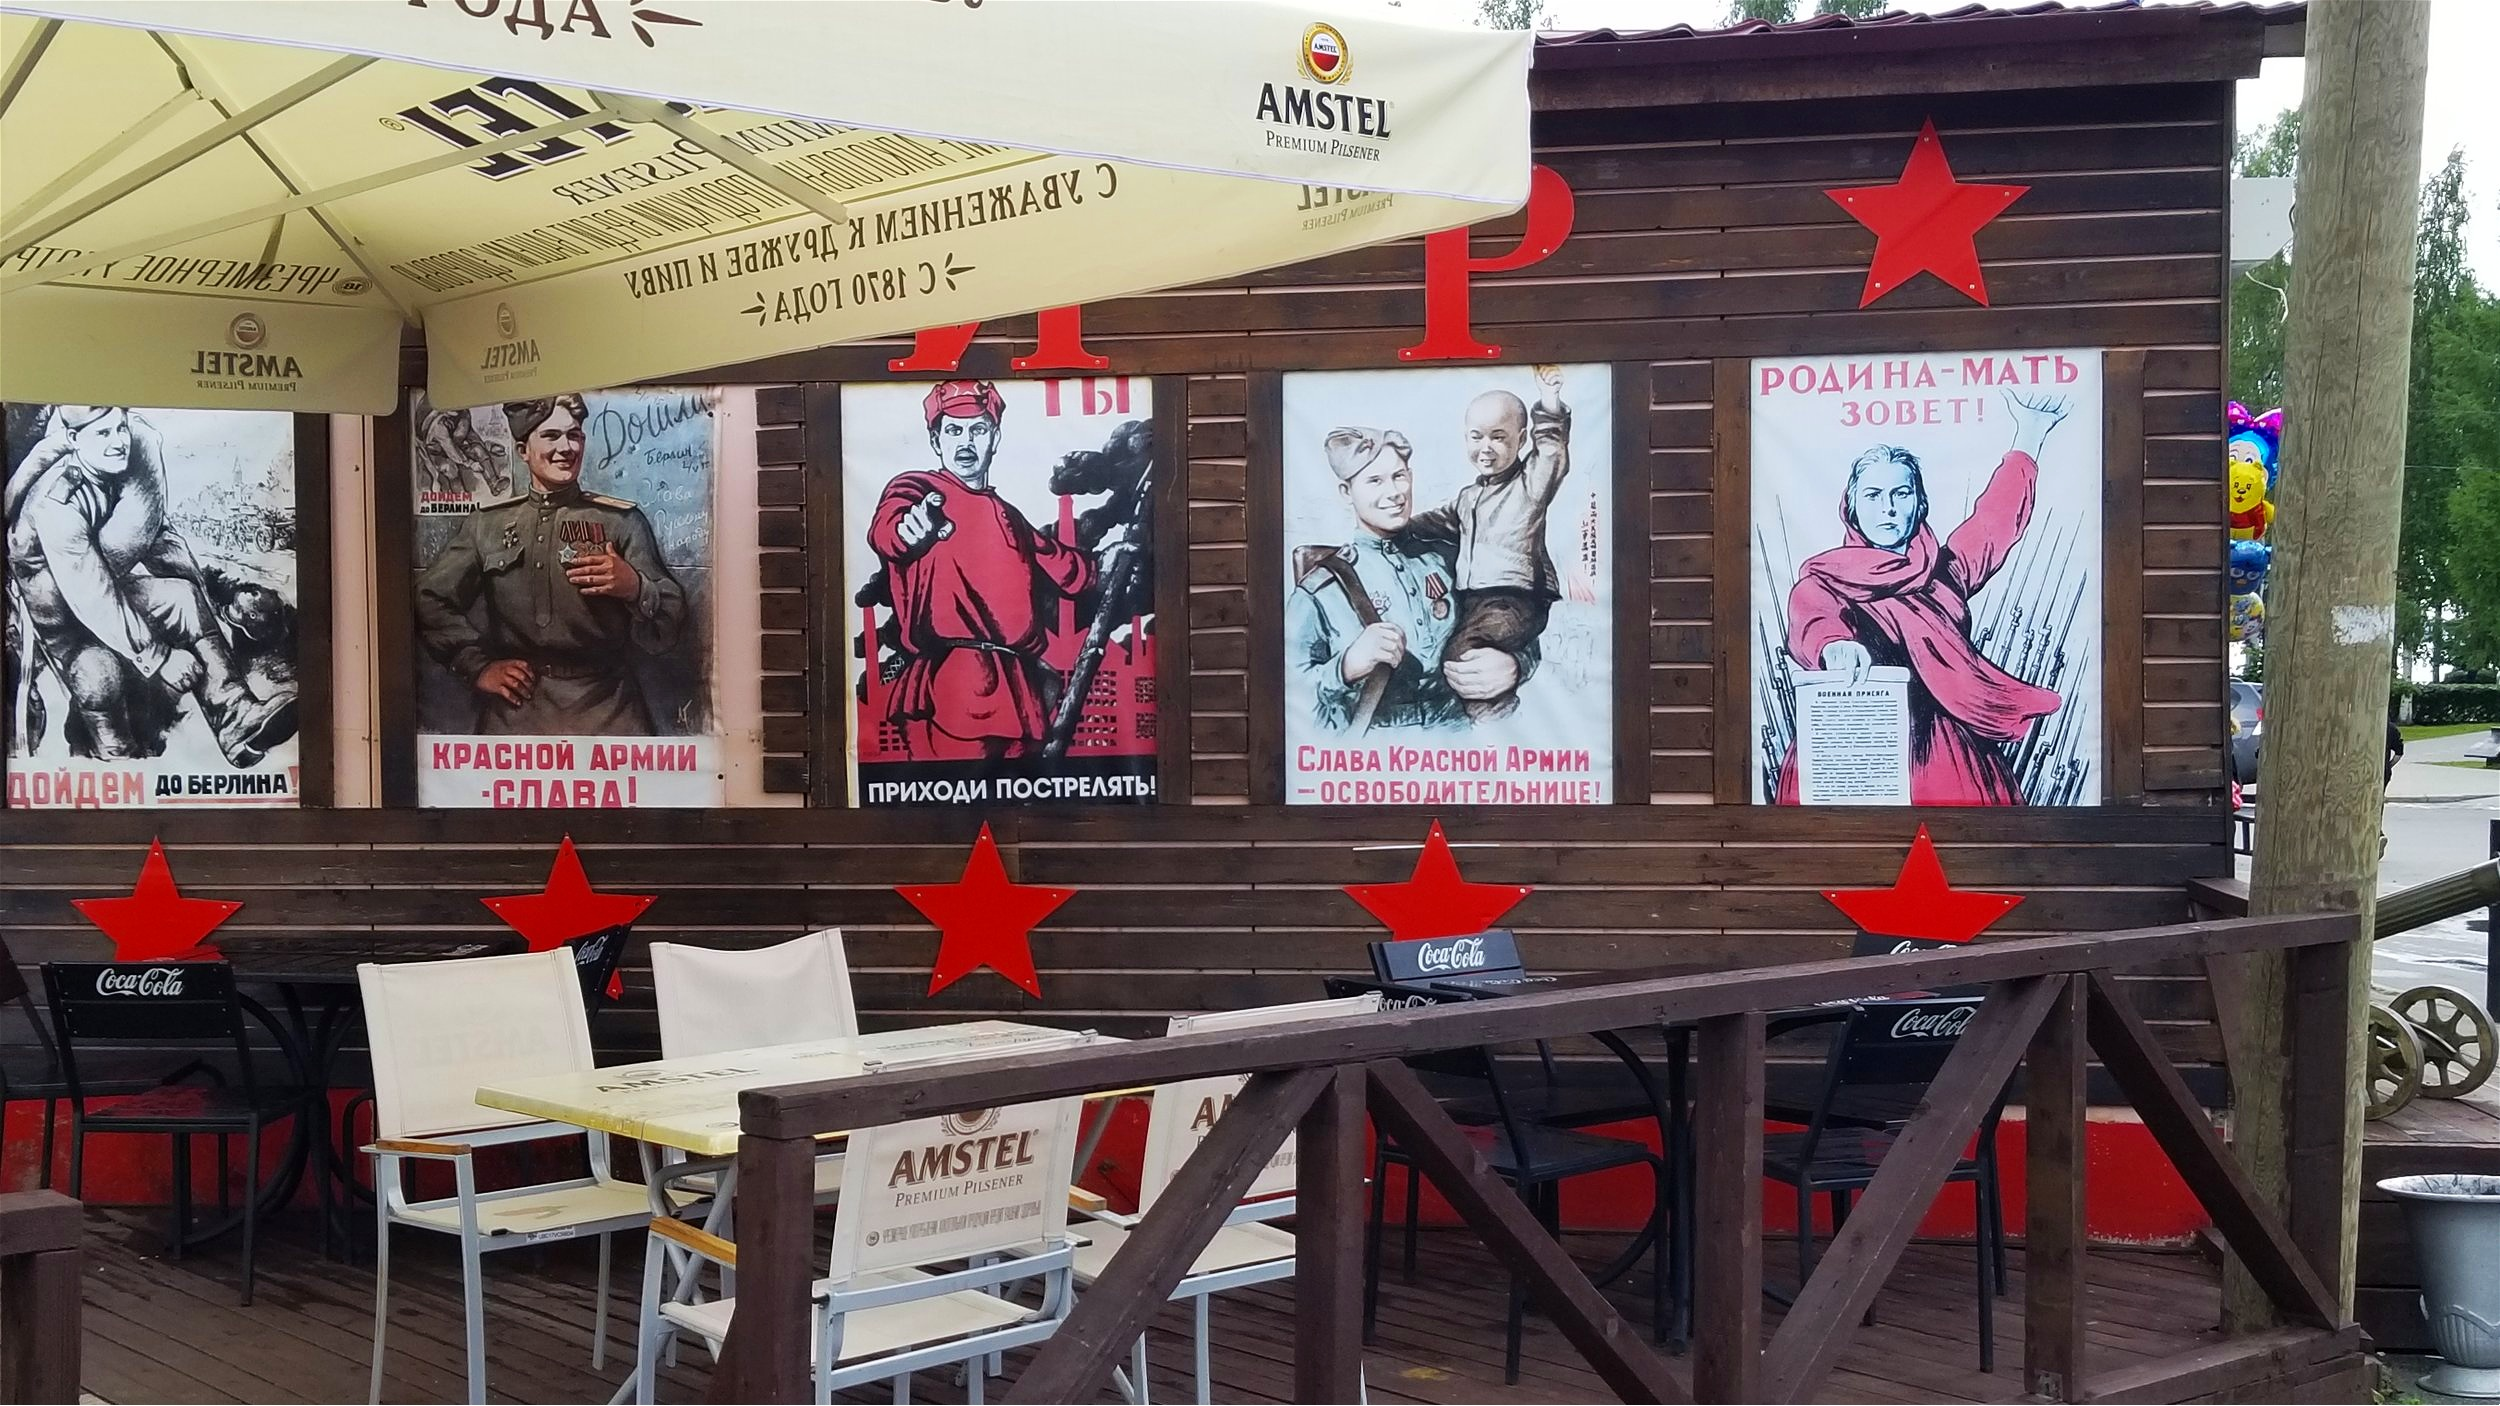 Soviet Cafe clashes with Amstel and Cocoa Cola